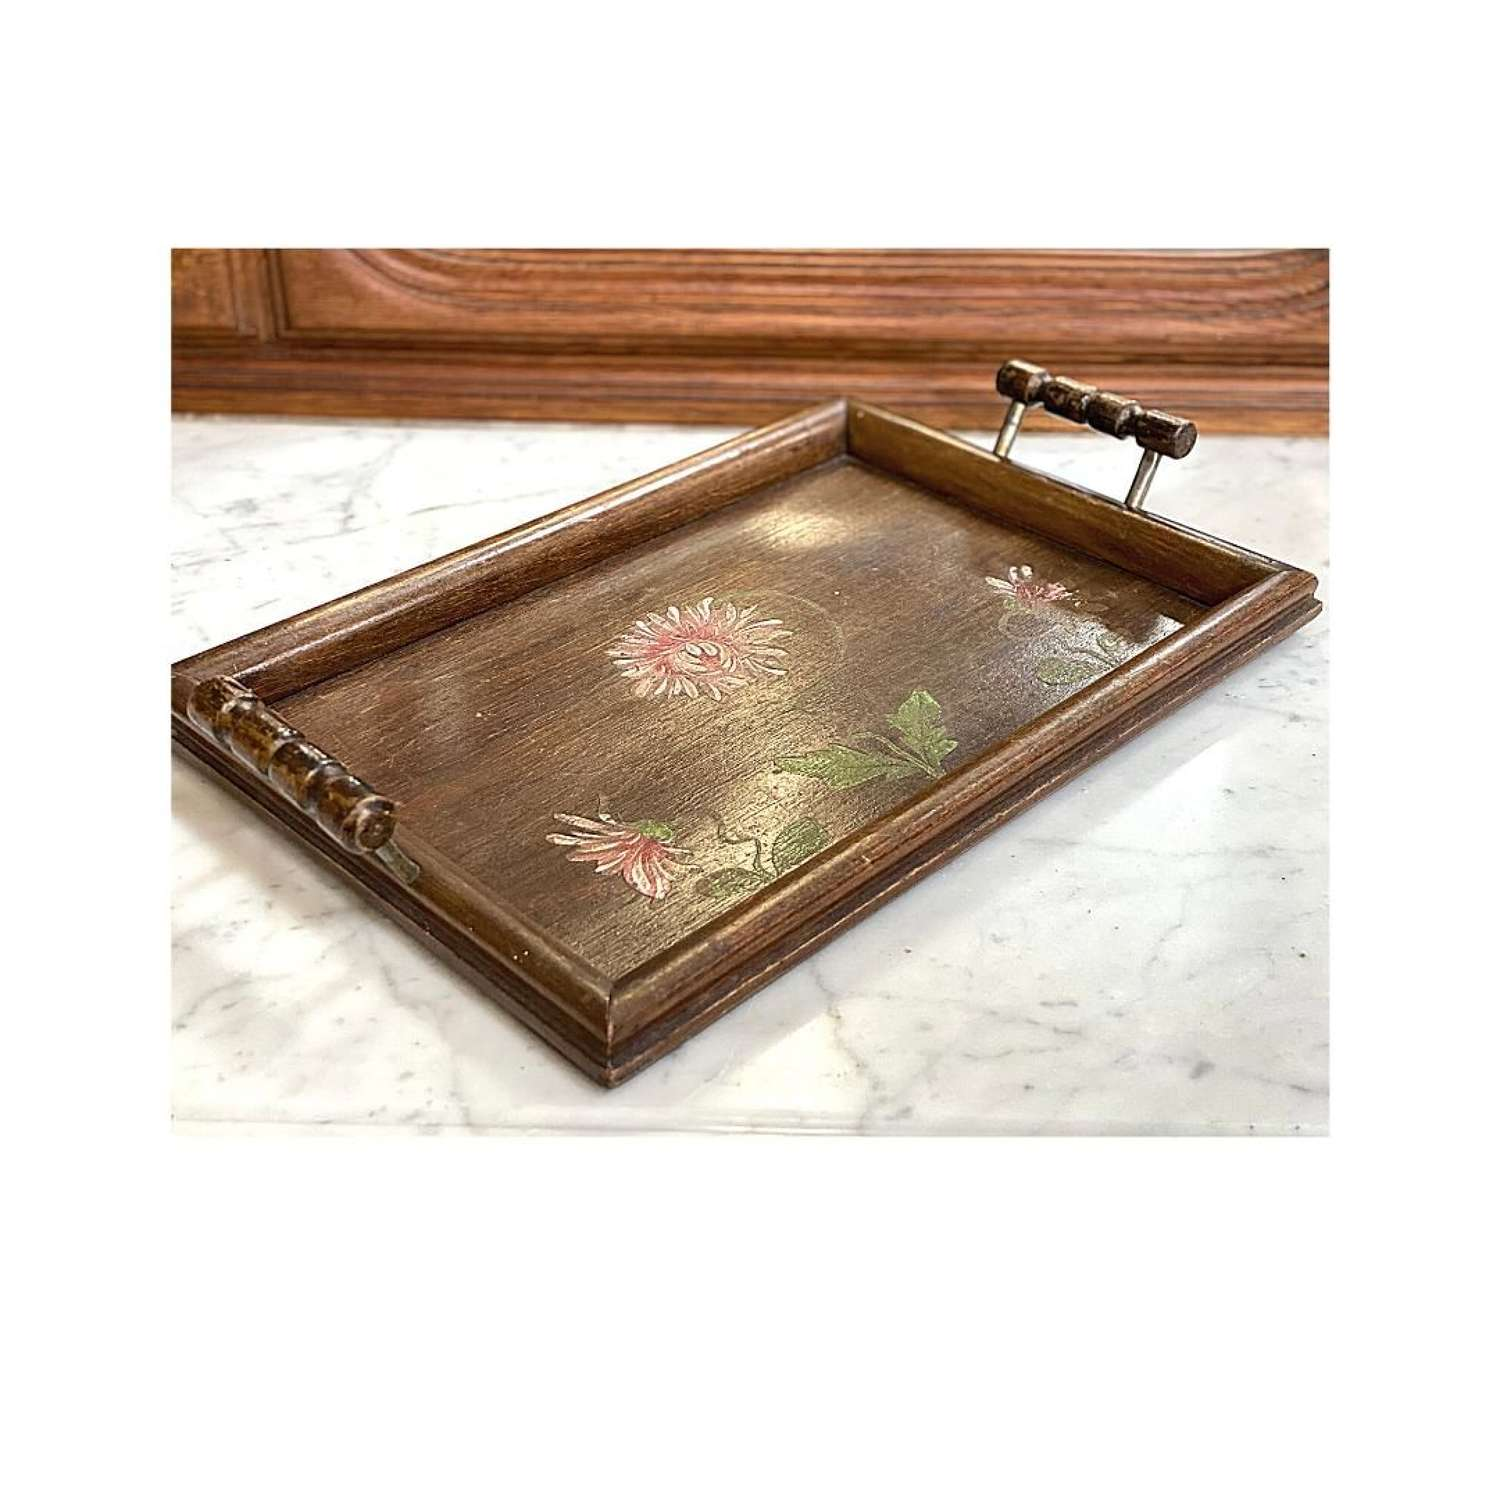 Vintage hand painted tray 32cm x 22cm